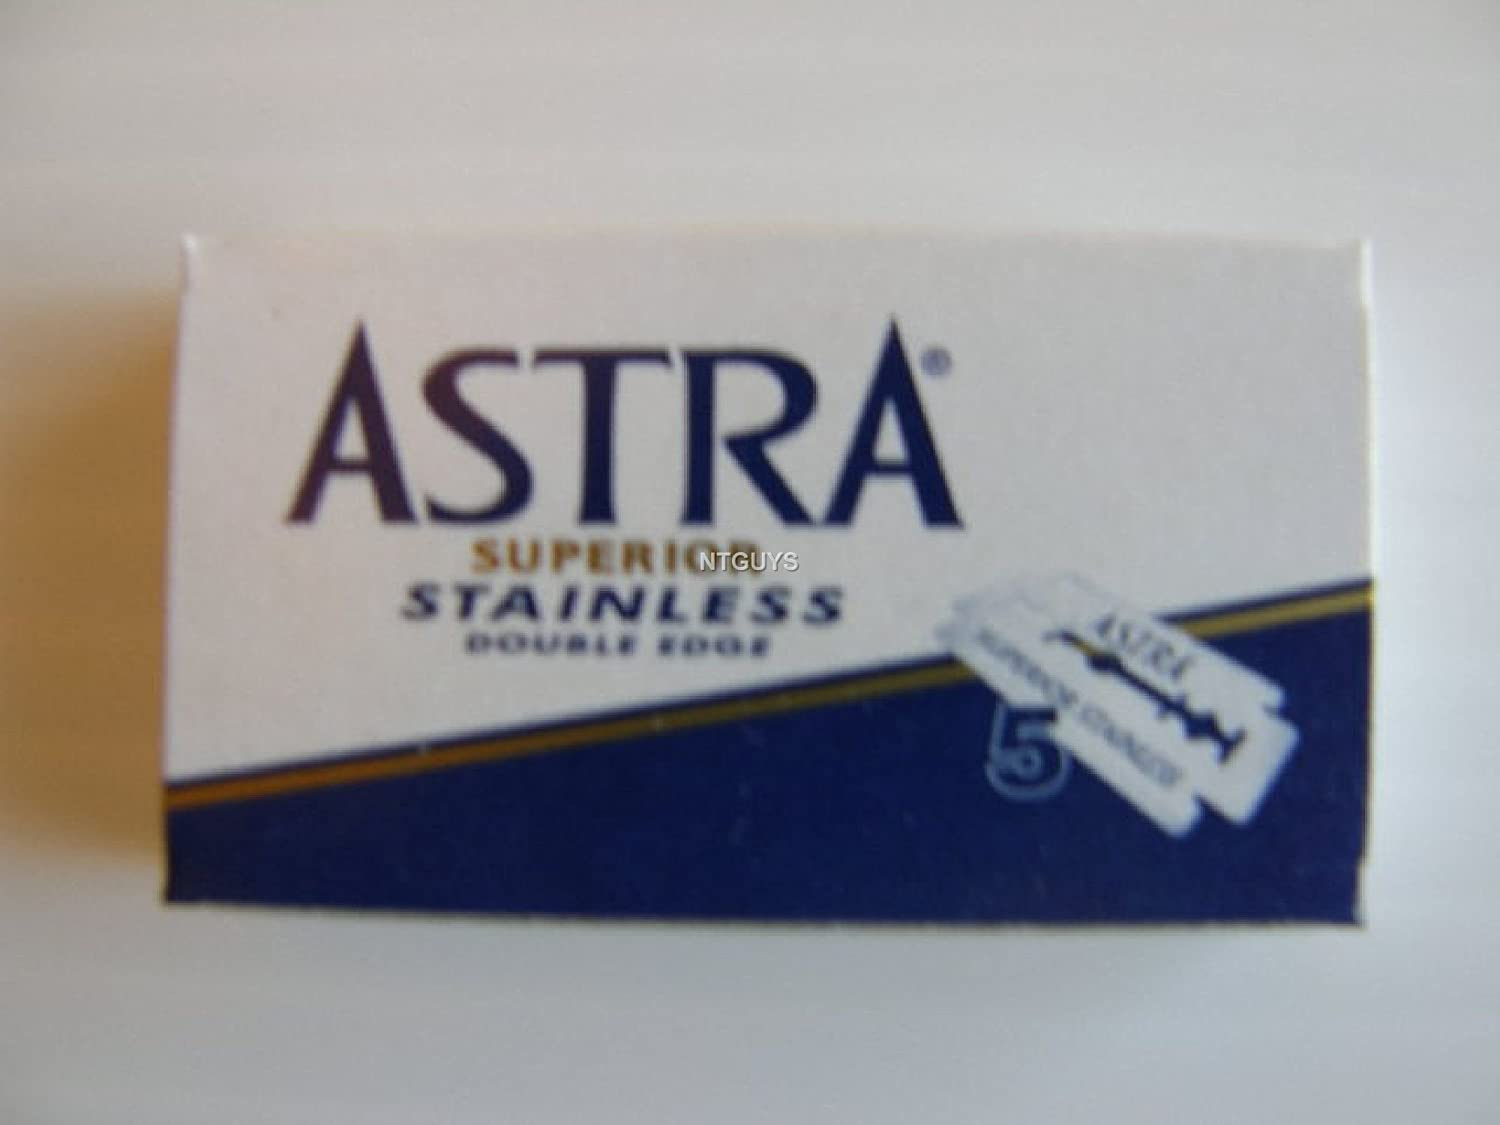 Astra Superior Stainless Double Edge Razor 50 Blades by Astra